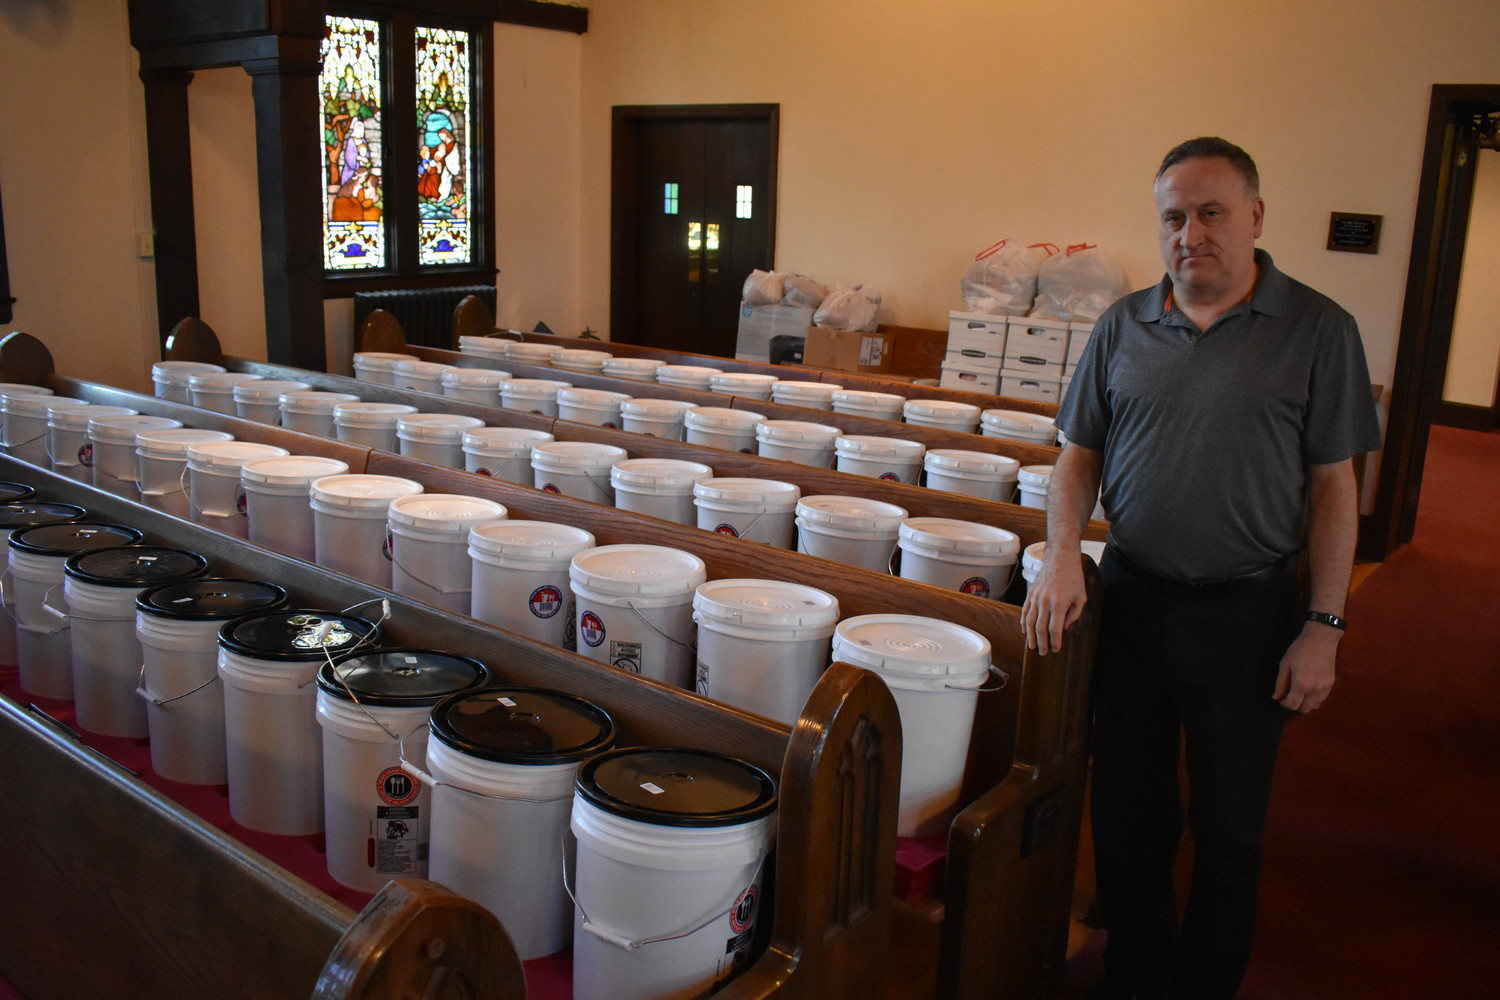 The Rev. Scott Ressman of the United Church of Rockville Centre volunteered his church as a drop-off location for Church World Service, which is gathering buckets filled with emergency supplies.